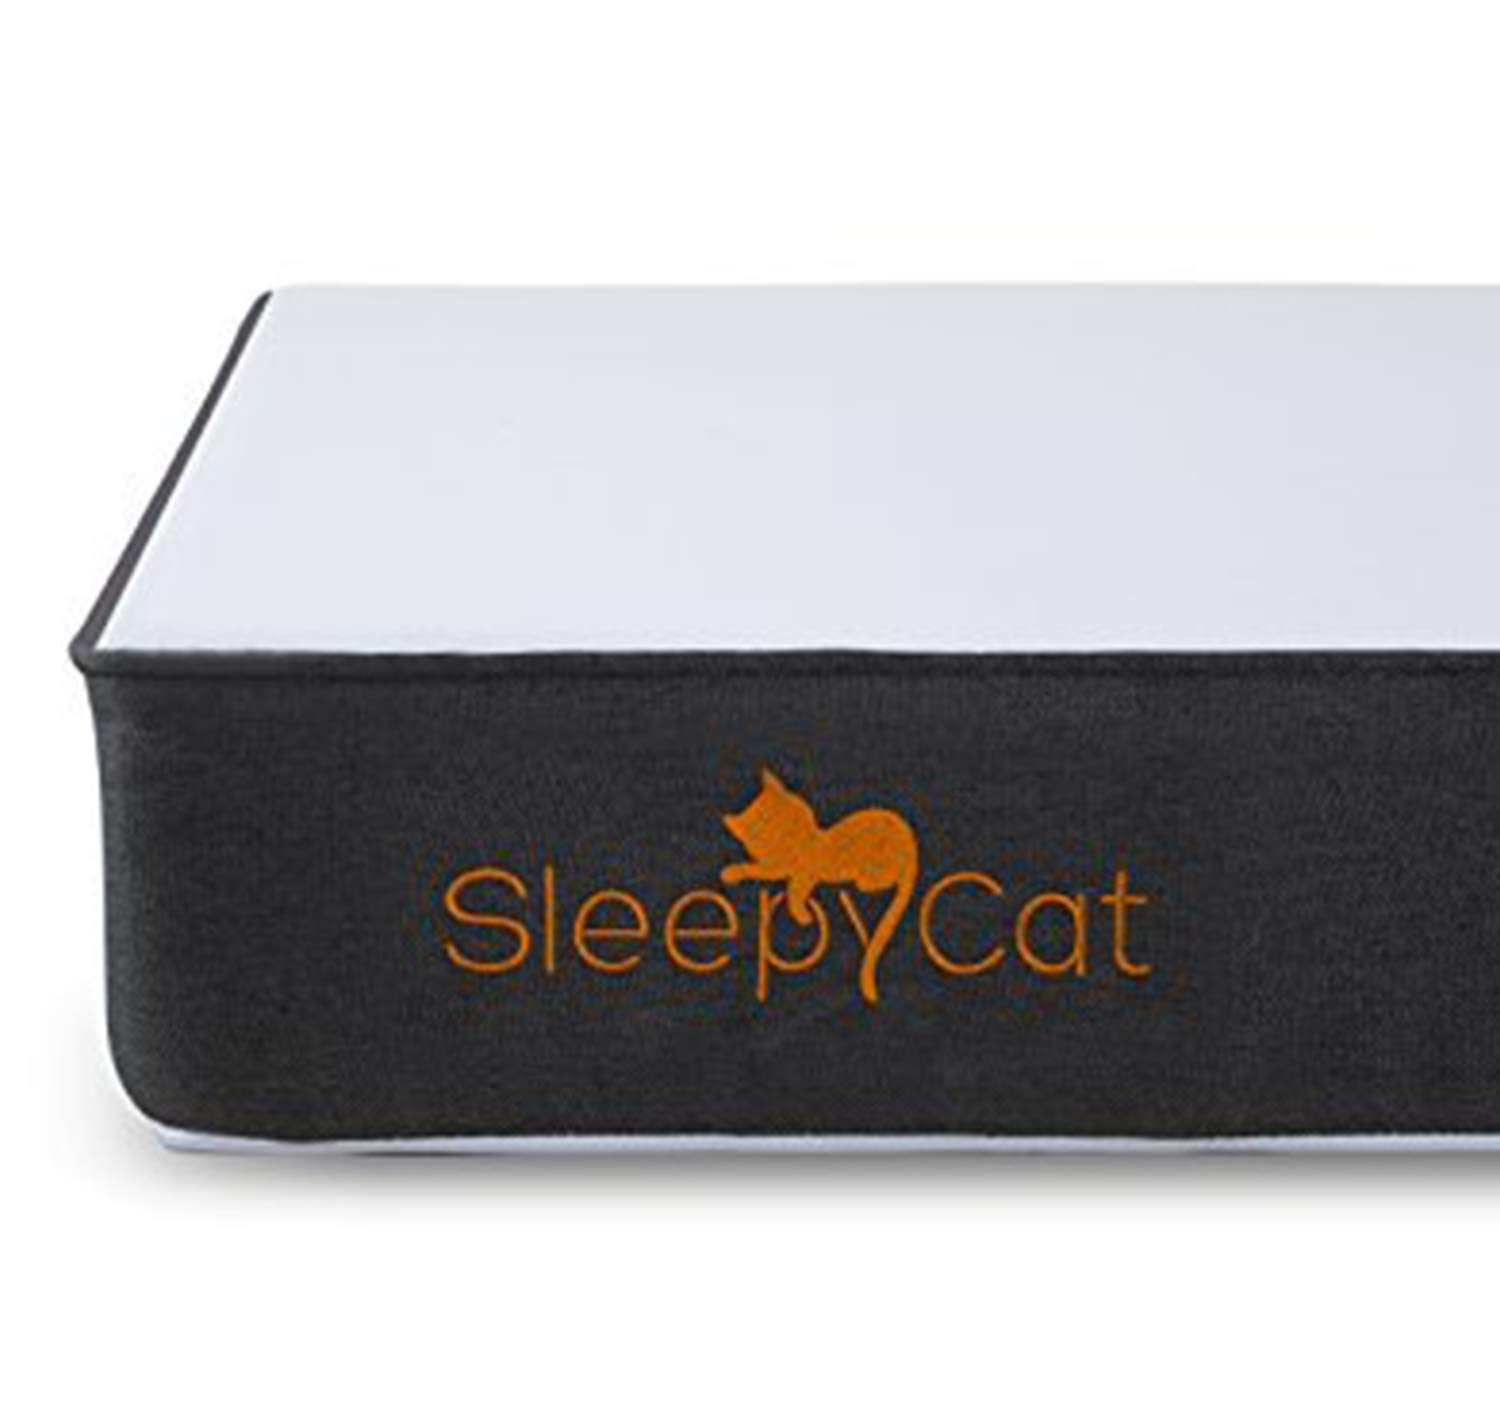 SleepyCat – Gel Memory Foam Mattress